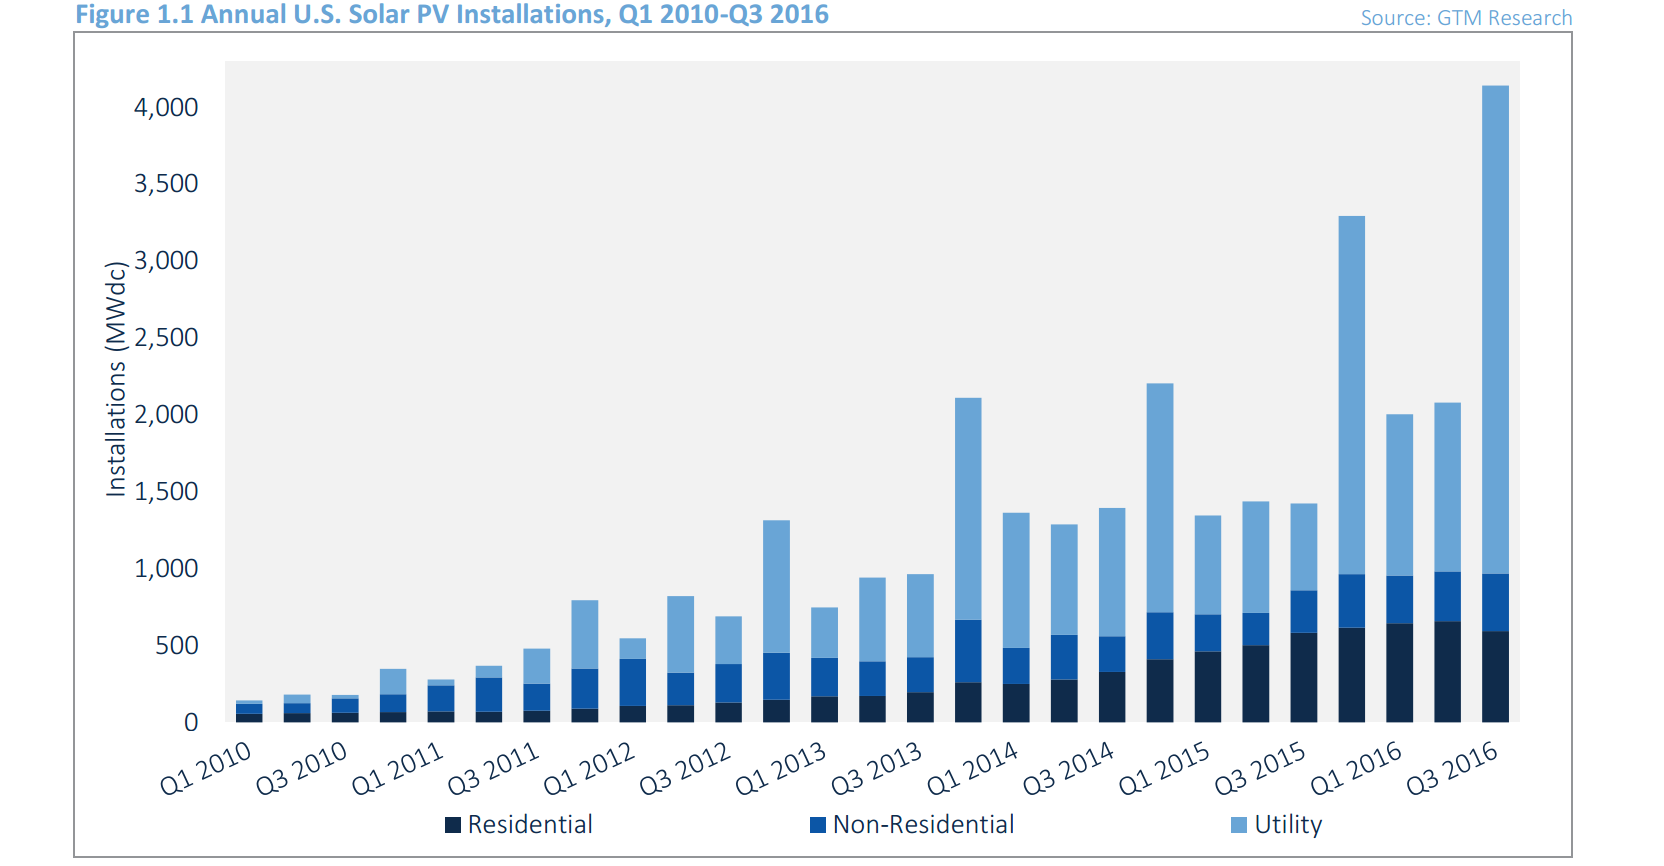 USA.QuarterlySolarInstallVolume.GTMResearch